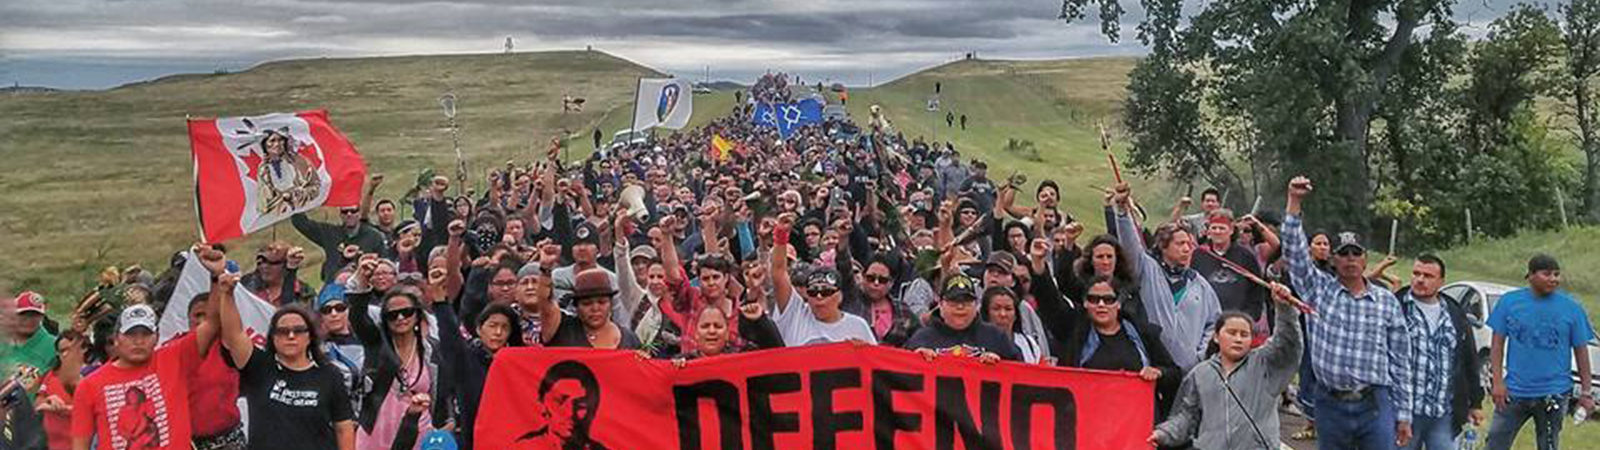 Photo from Standing Rock